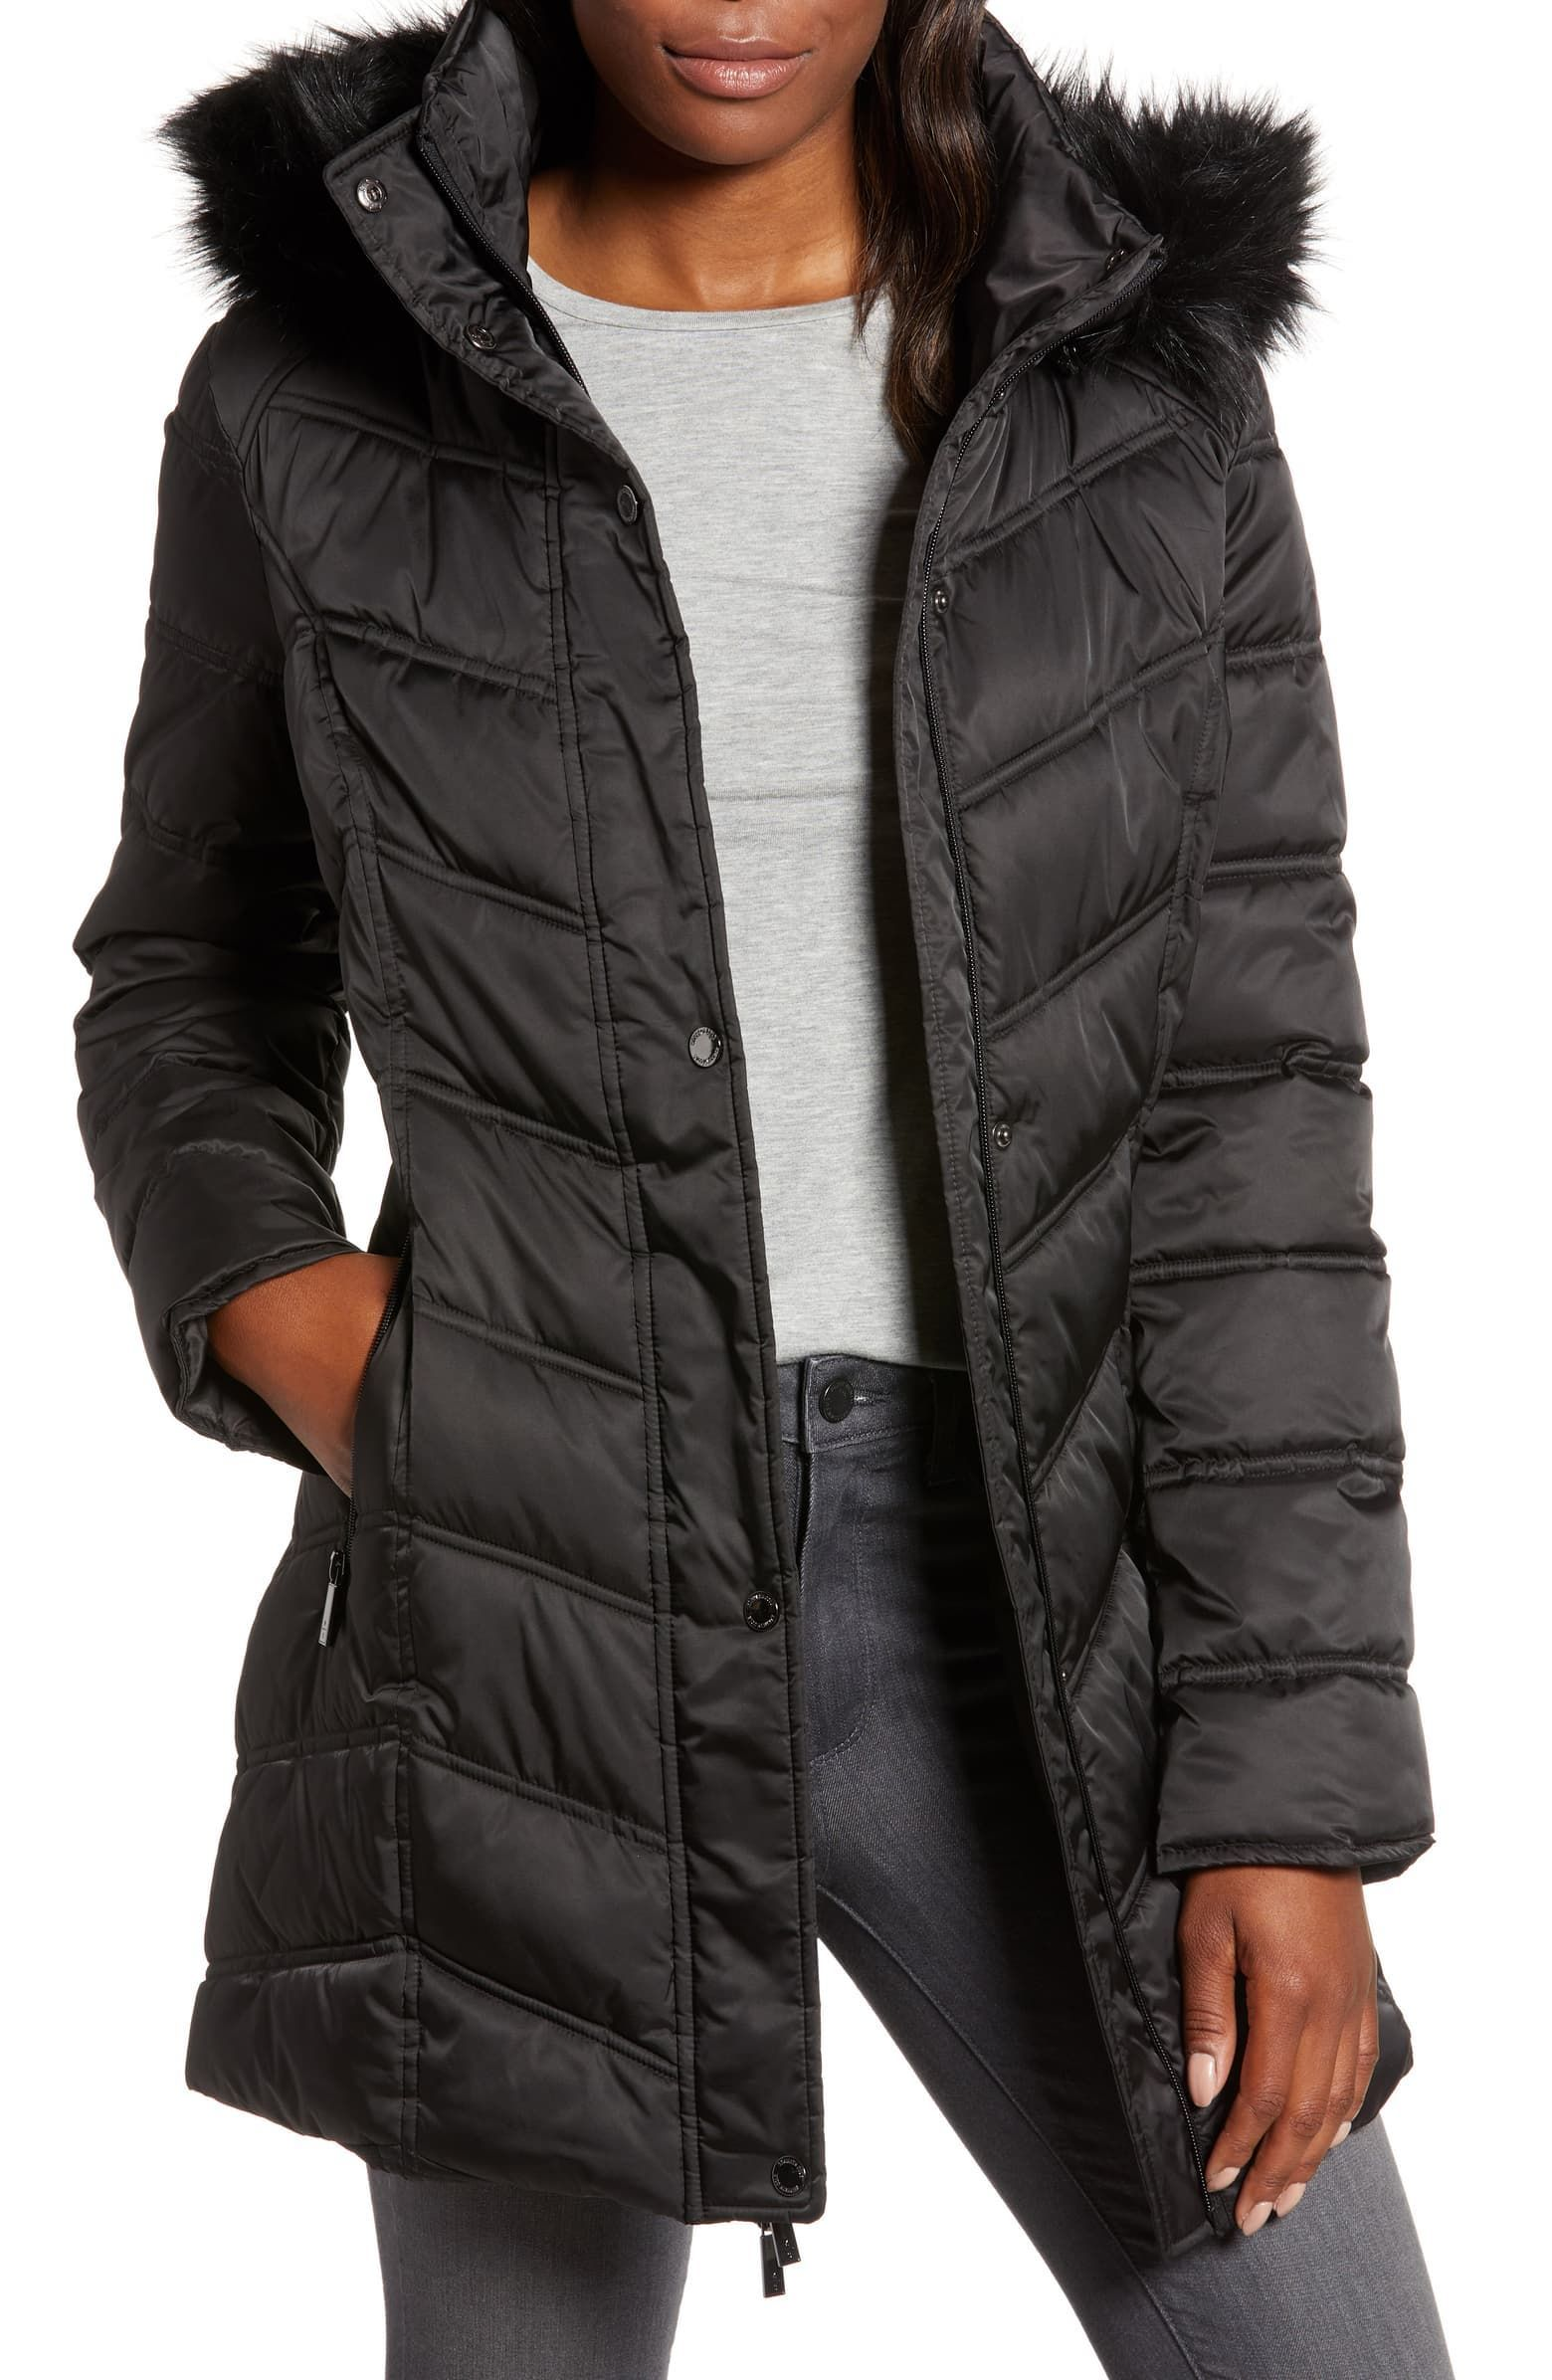 22 Canada Goose Alternatives Best Canada Goose Look Alikes Jackets Puffer Jacket Style Kenneth Cole New York Women Clothes Sale [ 2392 x 1560 Pixel ]